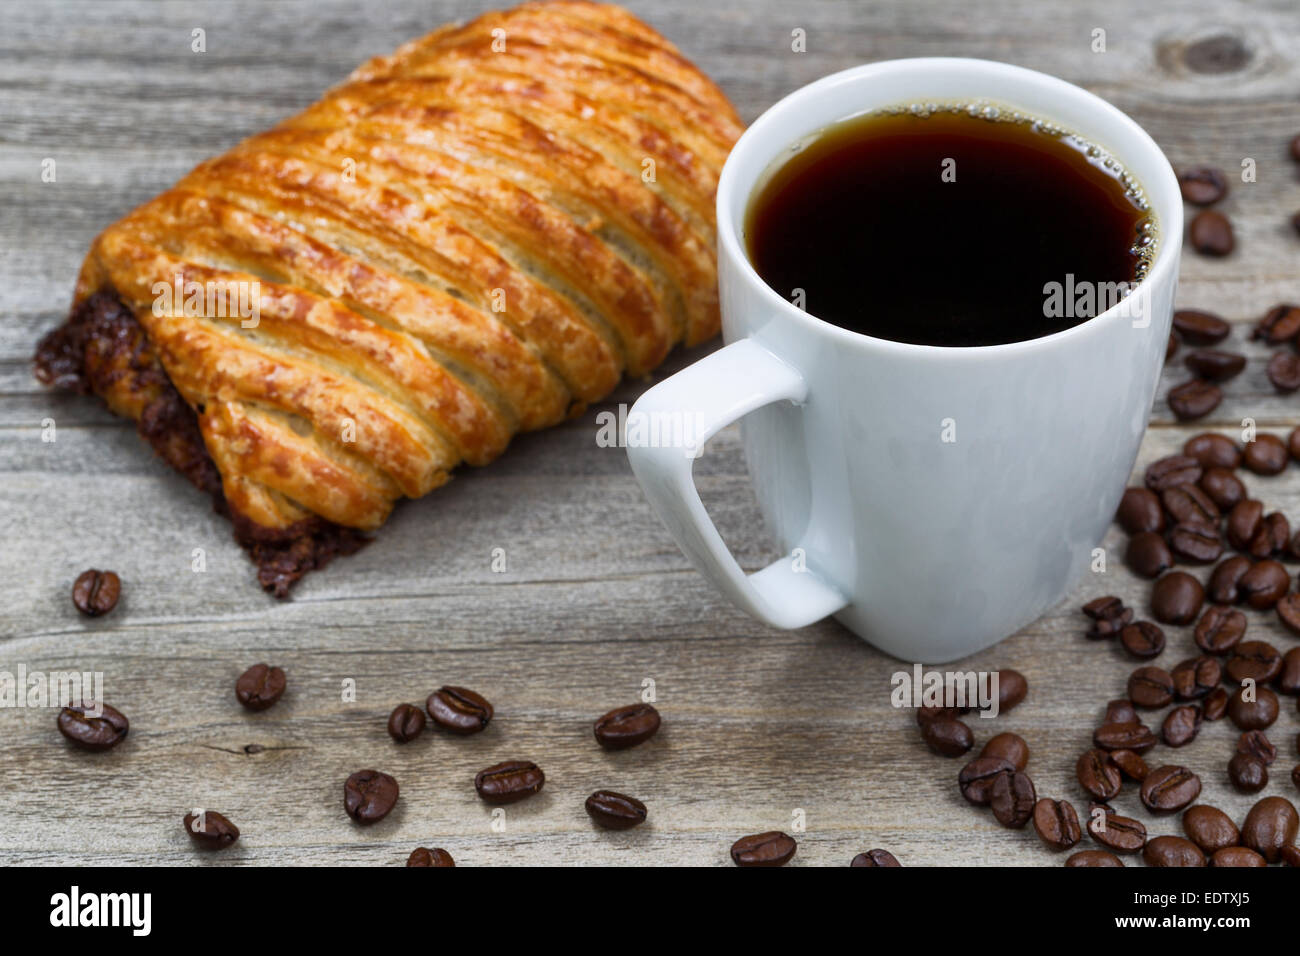 Close up of a cup of fresh dark coffee, large chocolate croissant ...